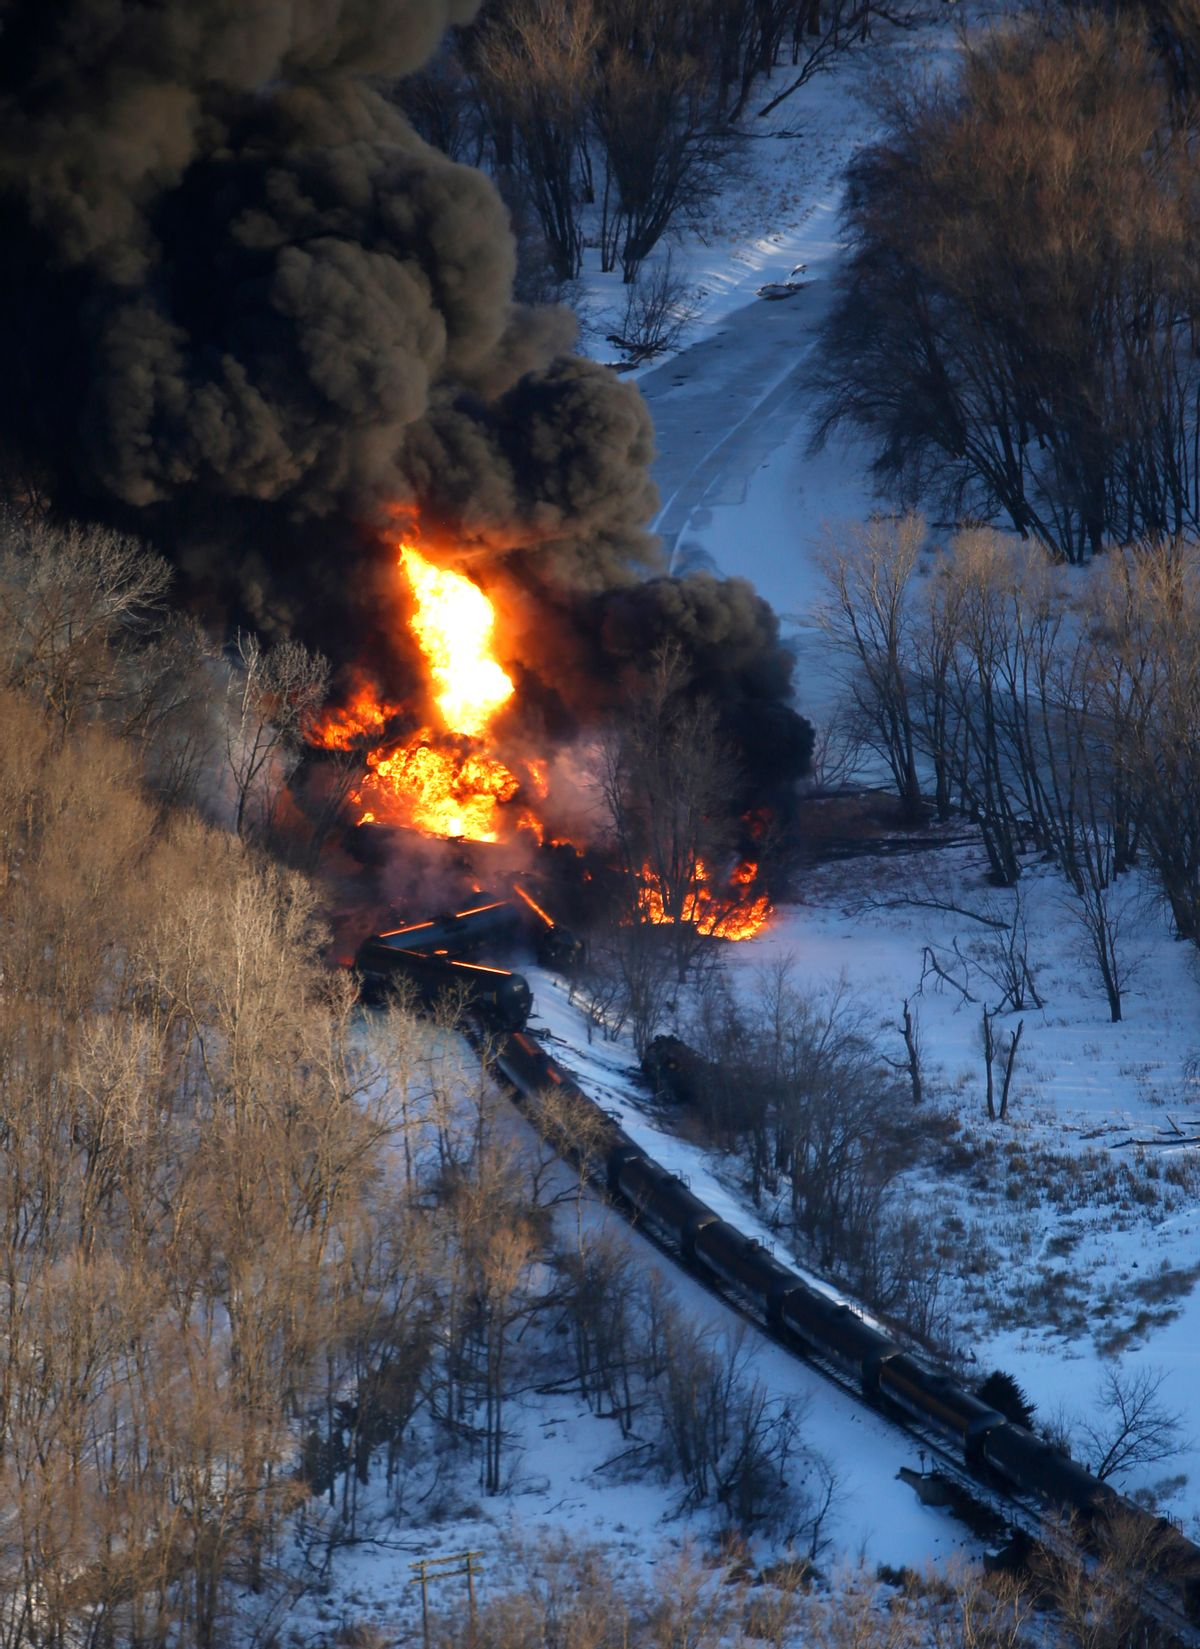 Smoke and flames erupt from the scene of a train derailment Thursday, March 5, 2015, near Galena, Ill. A BNSF Railway freight train loaded with crude oil derailed around 1:20 p.m. in a rural area where the Galena River meets the Mississippi, said Jo Daviess County Sheriff's Sgt. Mike Moser. (AP Photo/Telegraph Herald, Mike Burley)  (AP)